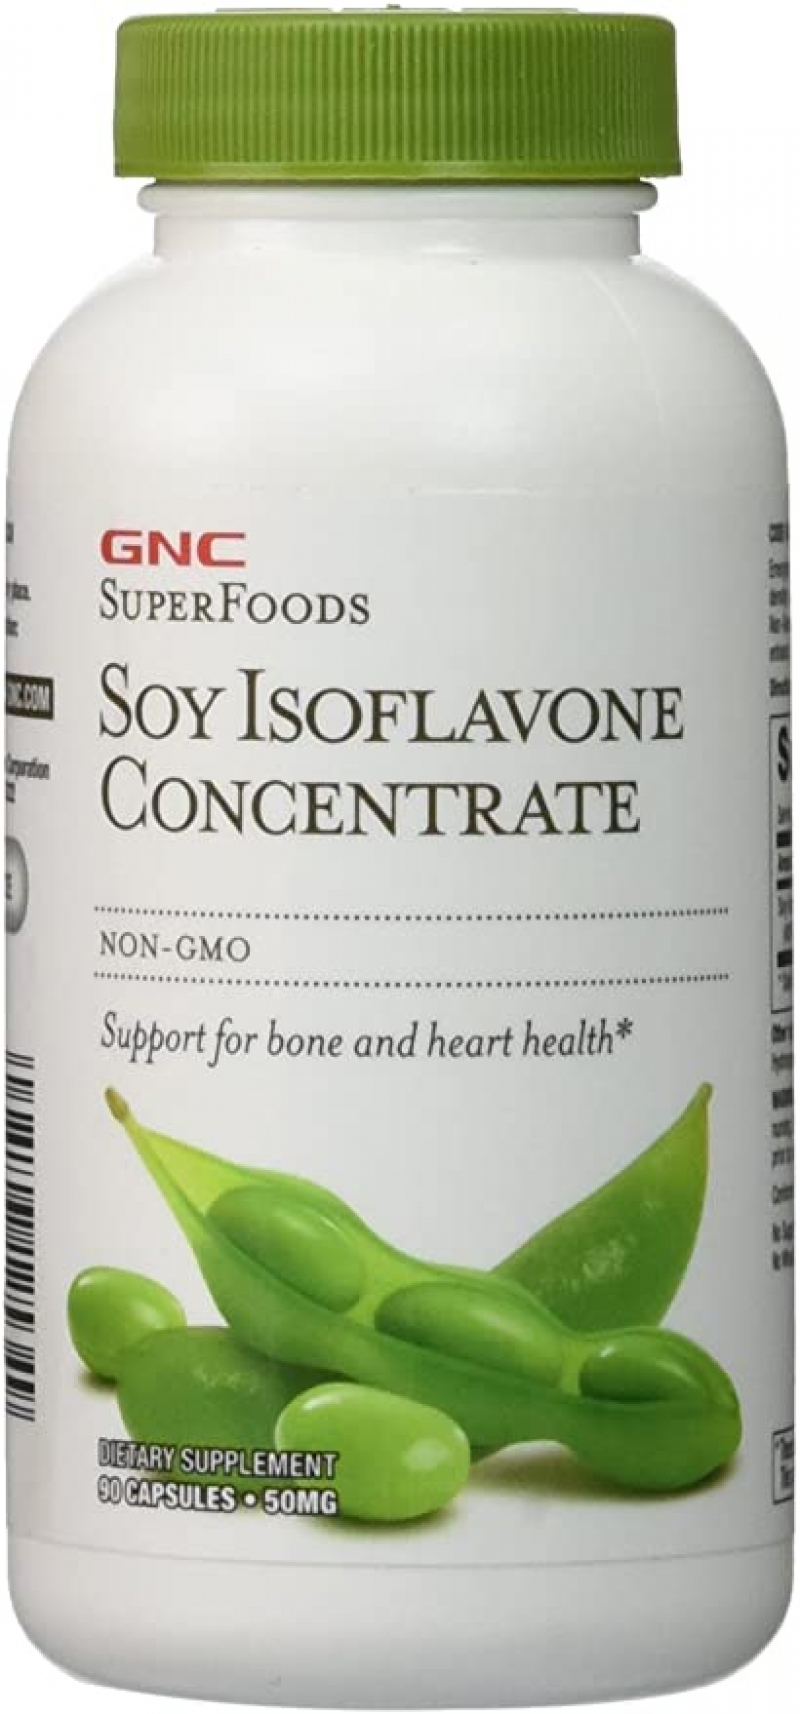 ihocon: GNC SuperFoods Soy Isoflavone Concentrate, 90 Capsules, Supports for Bone and Heart Health  大豆異黃酮